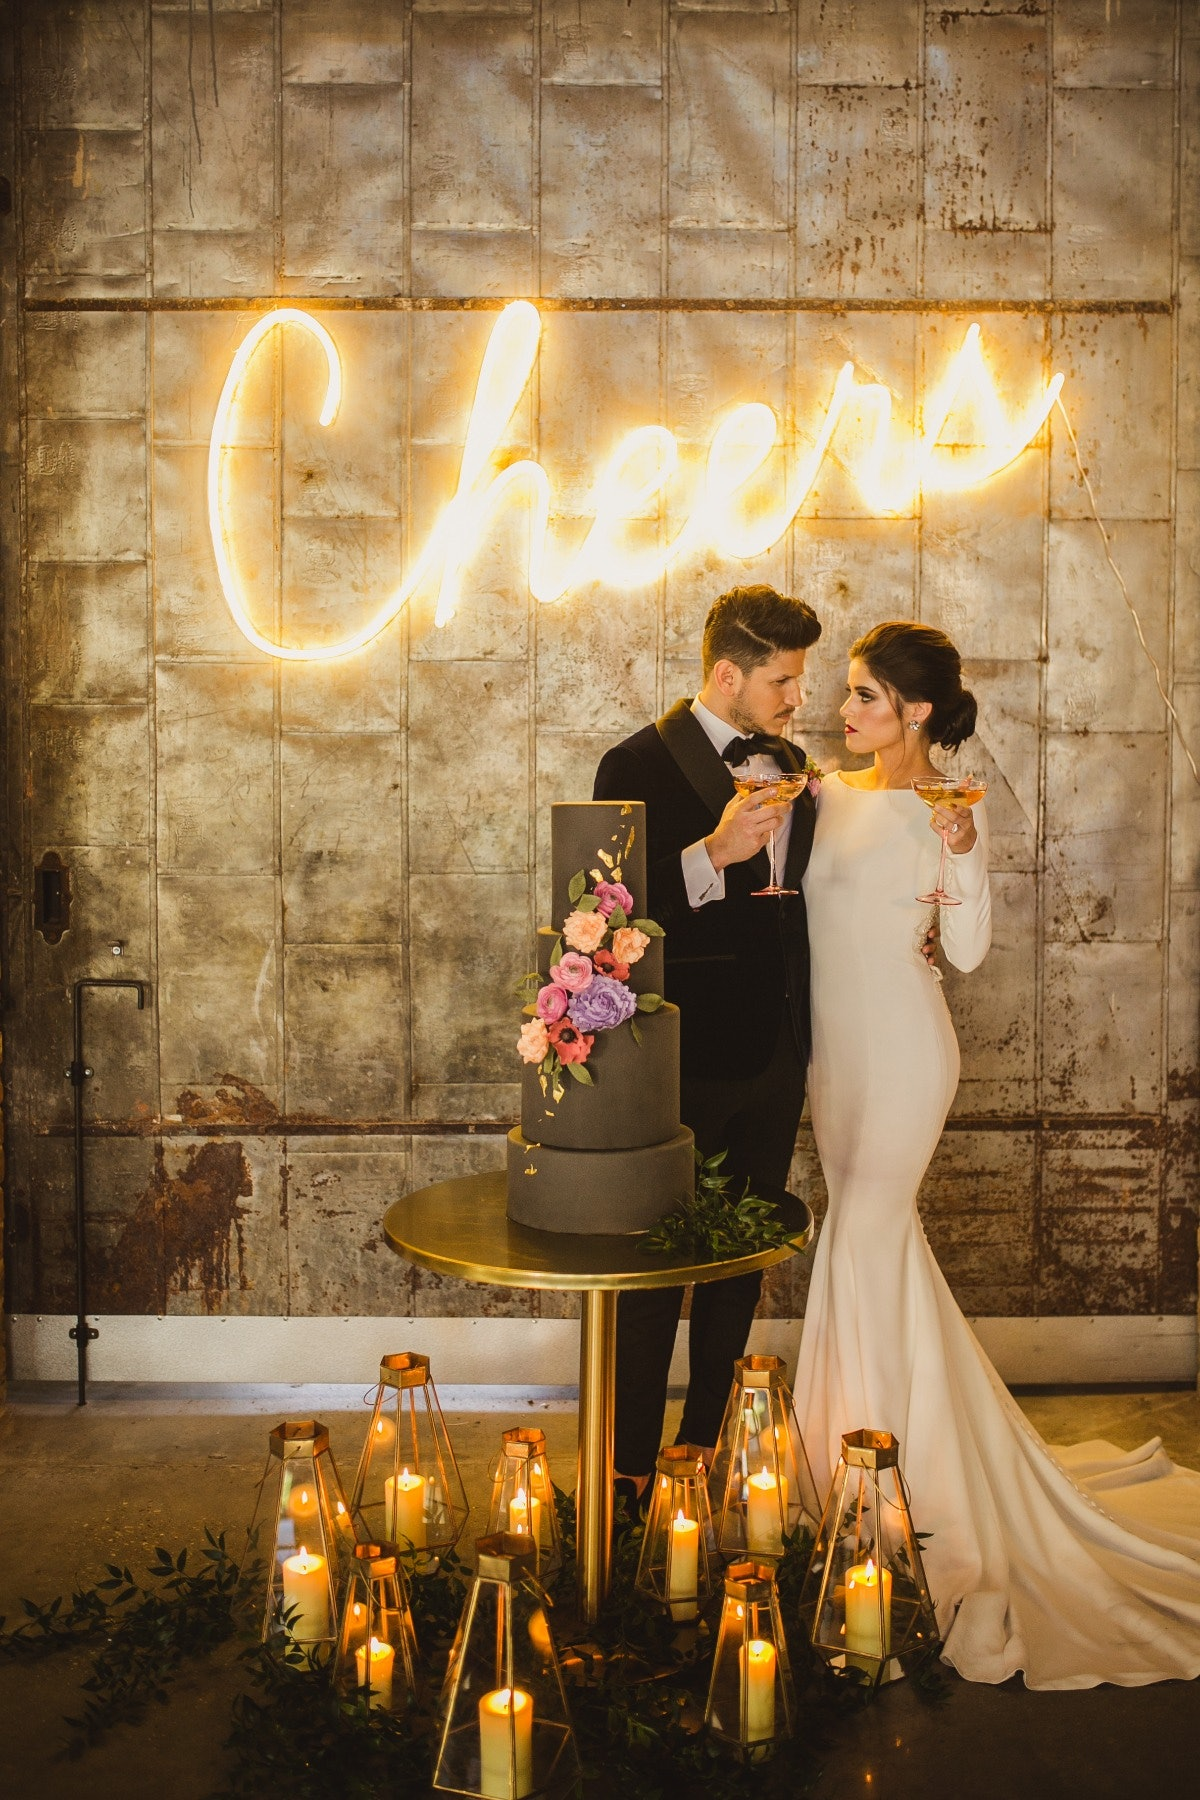 Bride and groom standing behind cake holding champagne under a neon sign saying 'Cheers'